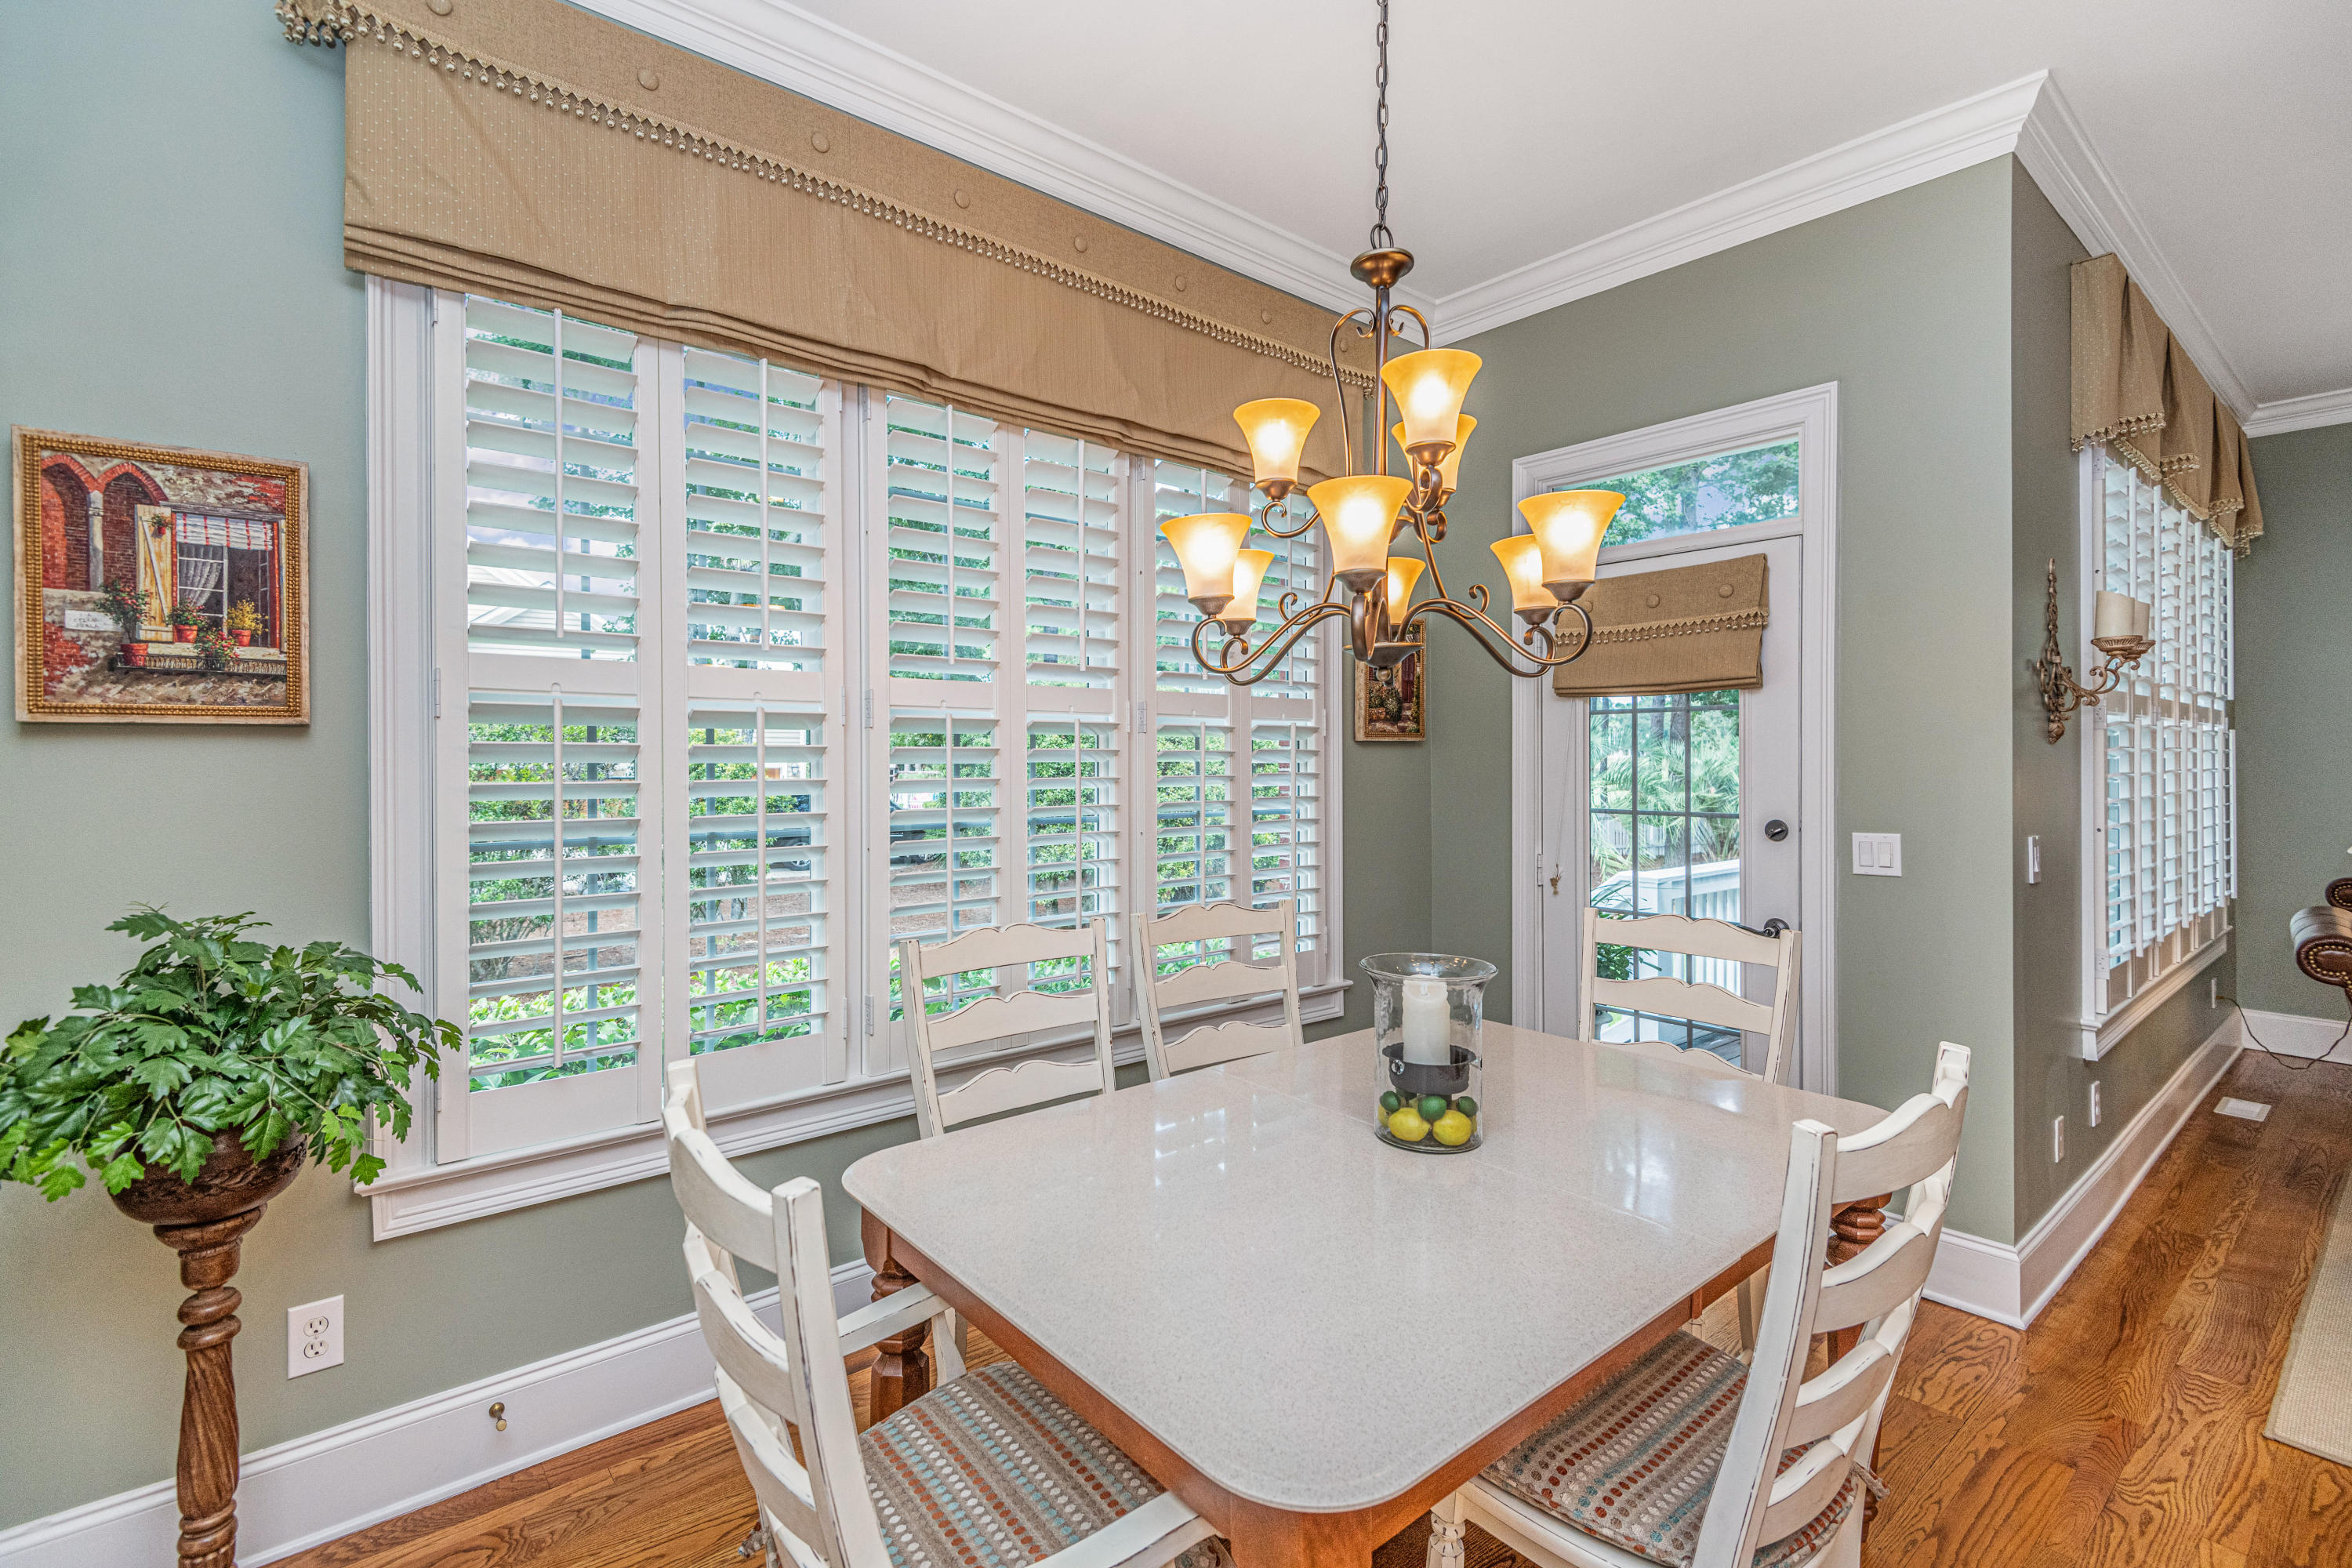 Dunes West Homes For Sale - 1837 Shell Ring, Mount Pleasant, SC - 22